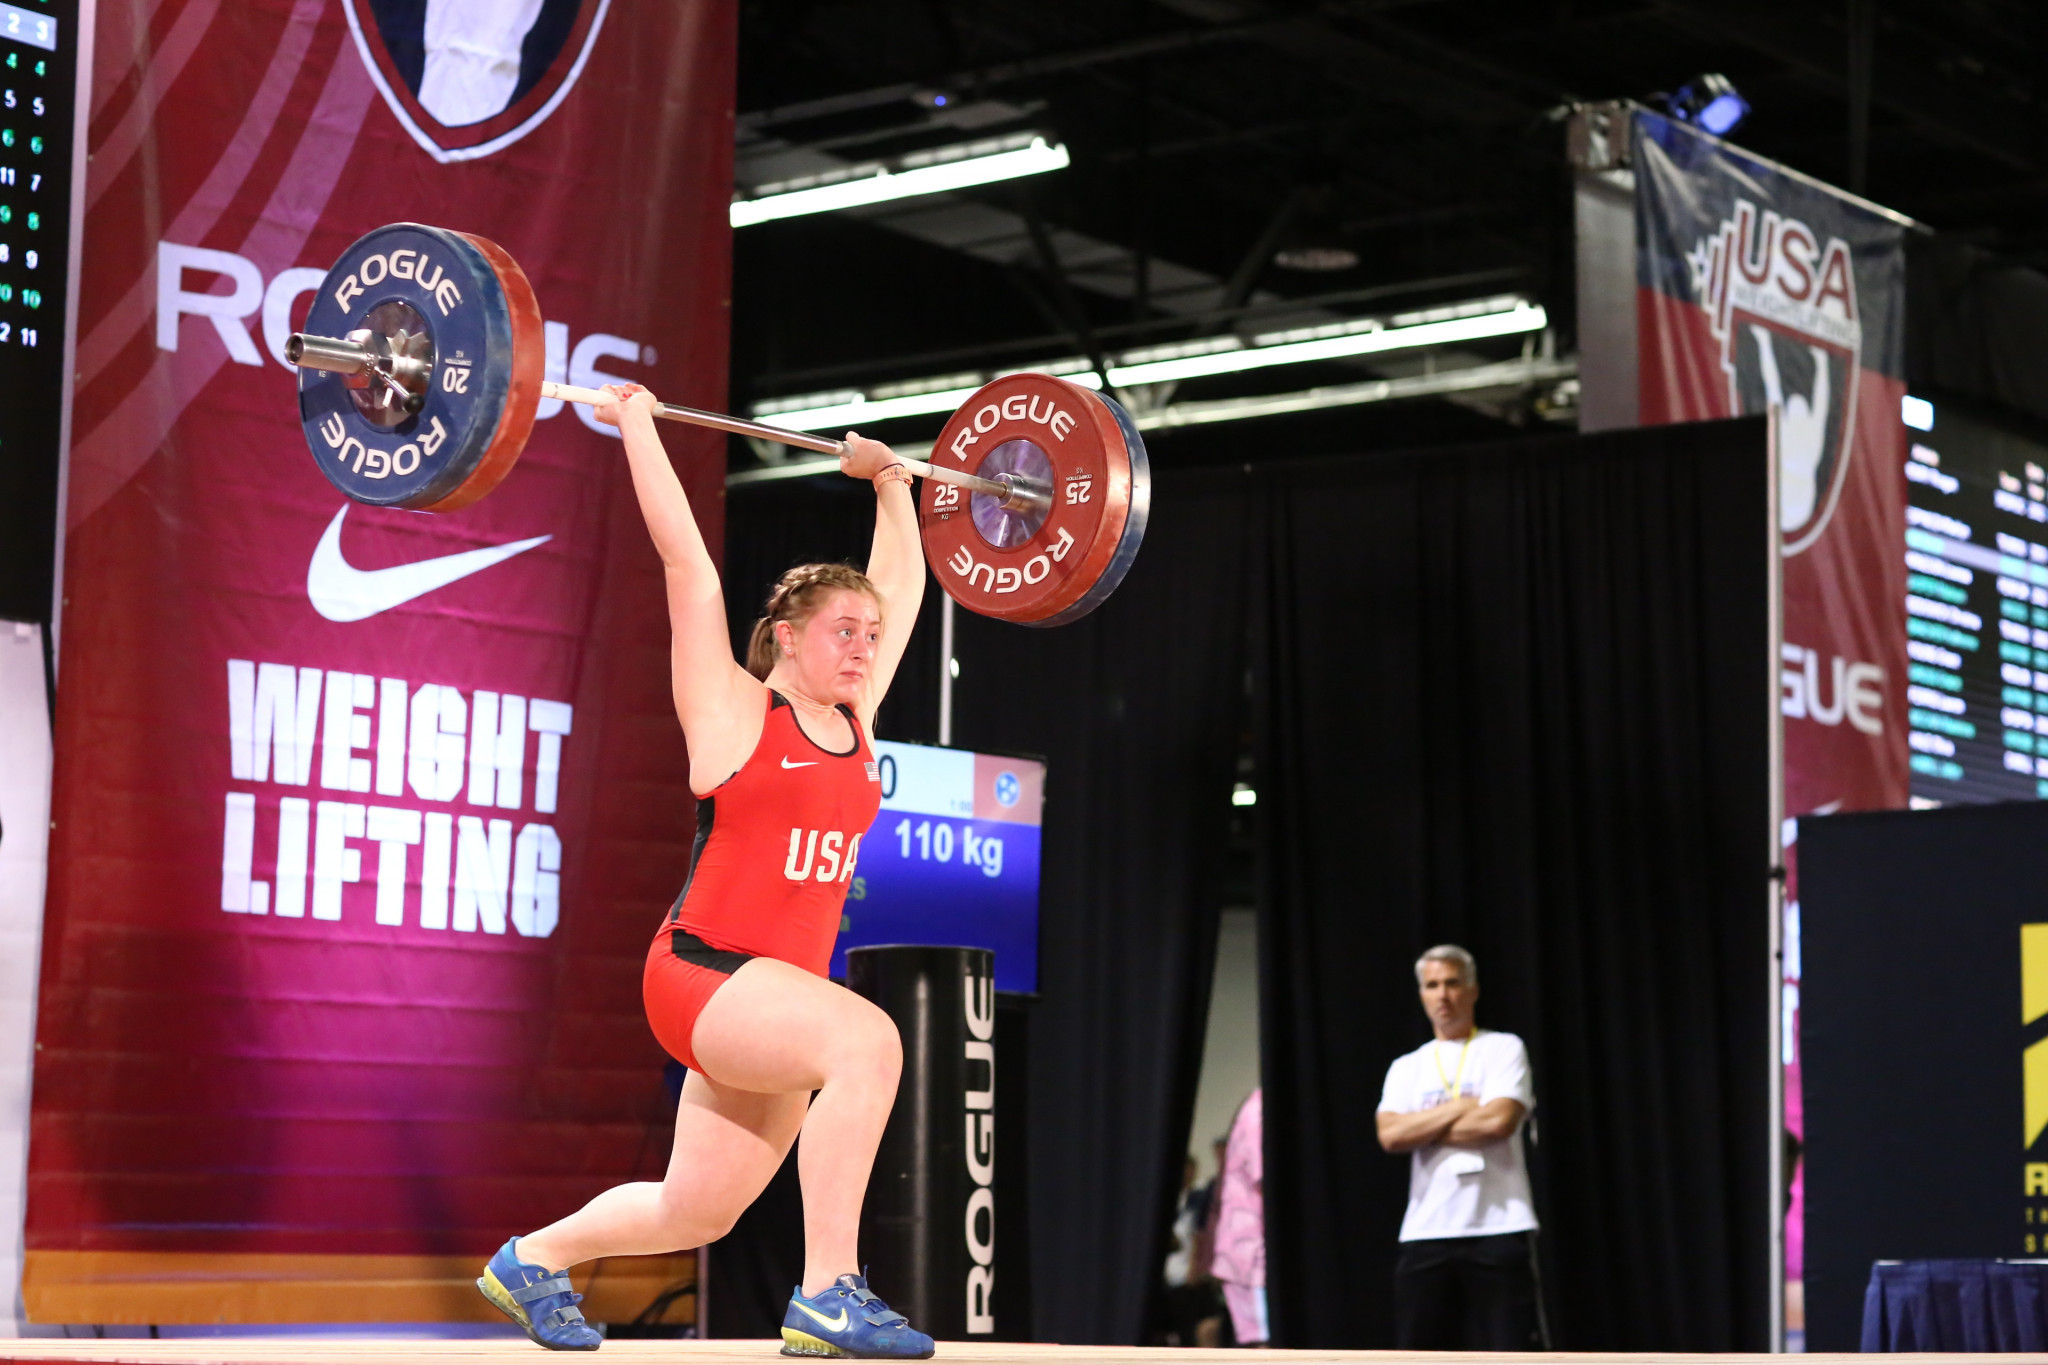 American teenager Reeves takes weightlifting world title to keep run going